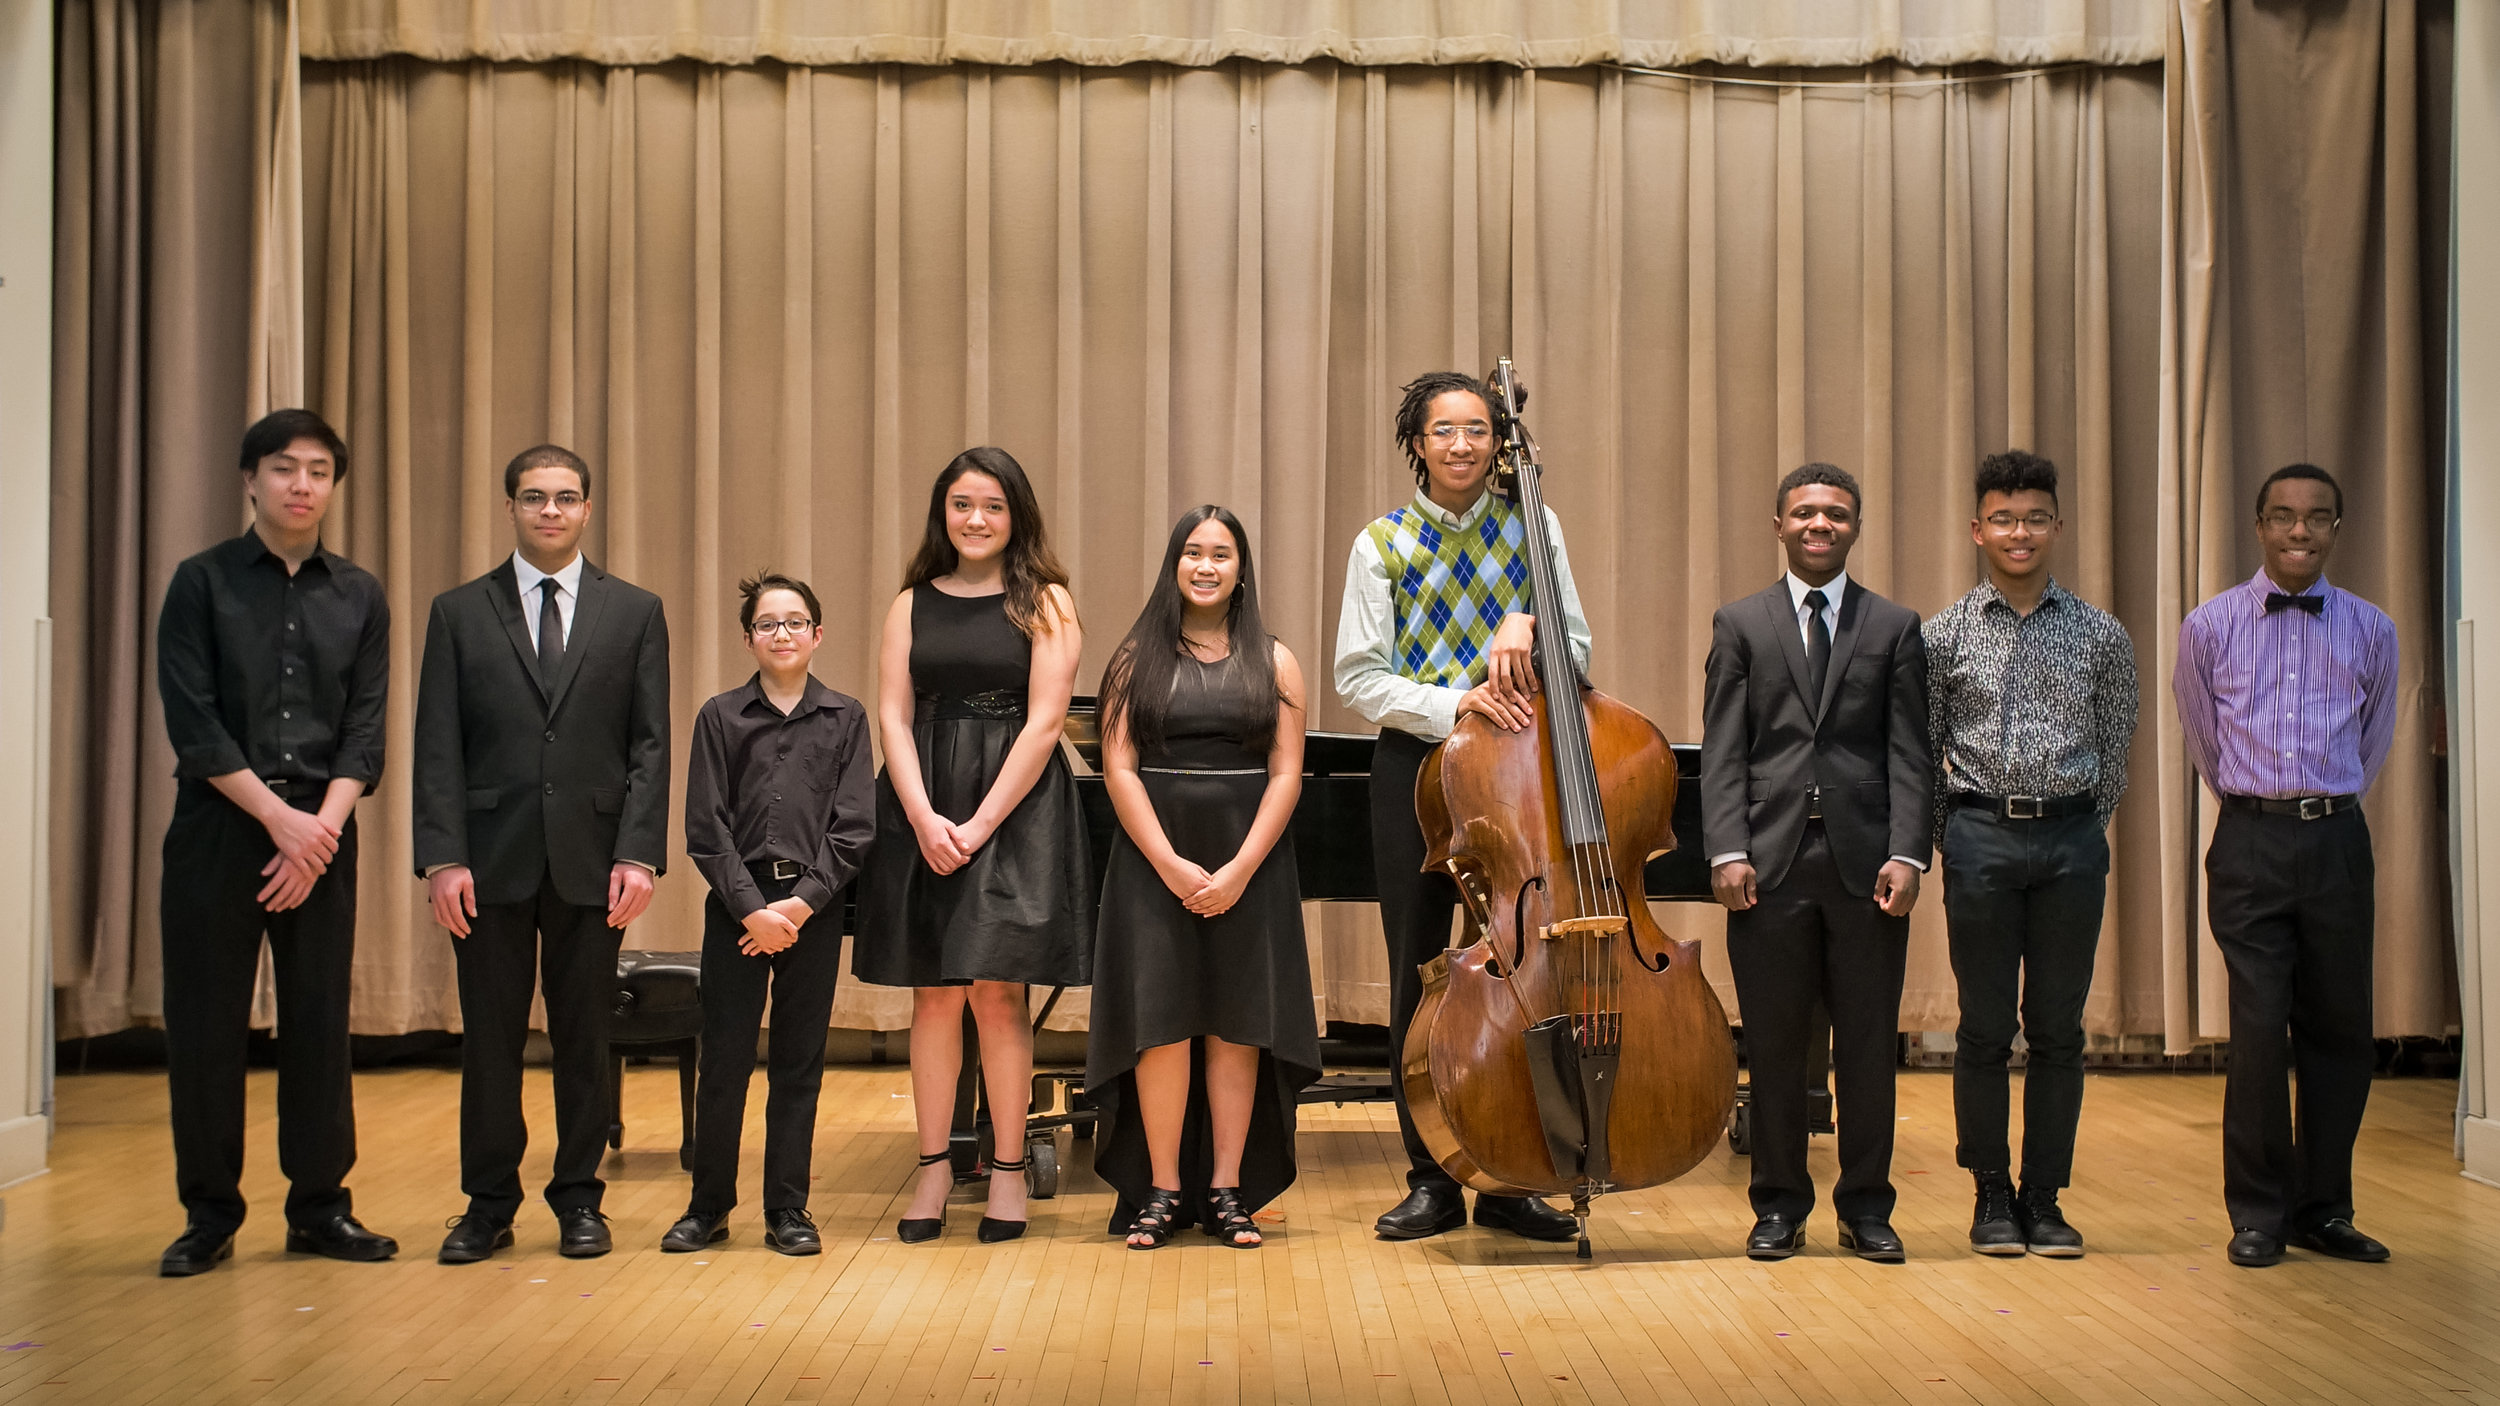 Left to right: Gabriel Gaw (Double Bass, 11th grade), Alex Phipps (Clarinet, 11th grade), Miro Raj (Violin, 6th grade), Helena Munoz (Violin, 10th grade), Kintan Silvany (Harp, 10th grade), Braden Ellis (Double Bass, 11th grade), Myles Bell (Violin, 10th grade), Blue Shelton (Flute, 10th grade), Christian Kercy (11th grade).   Click here for repertoire and video